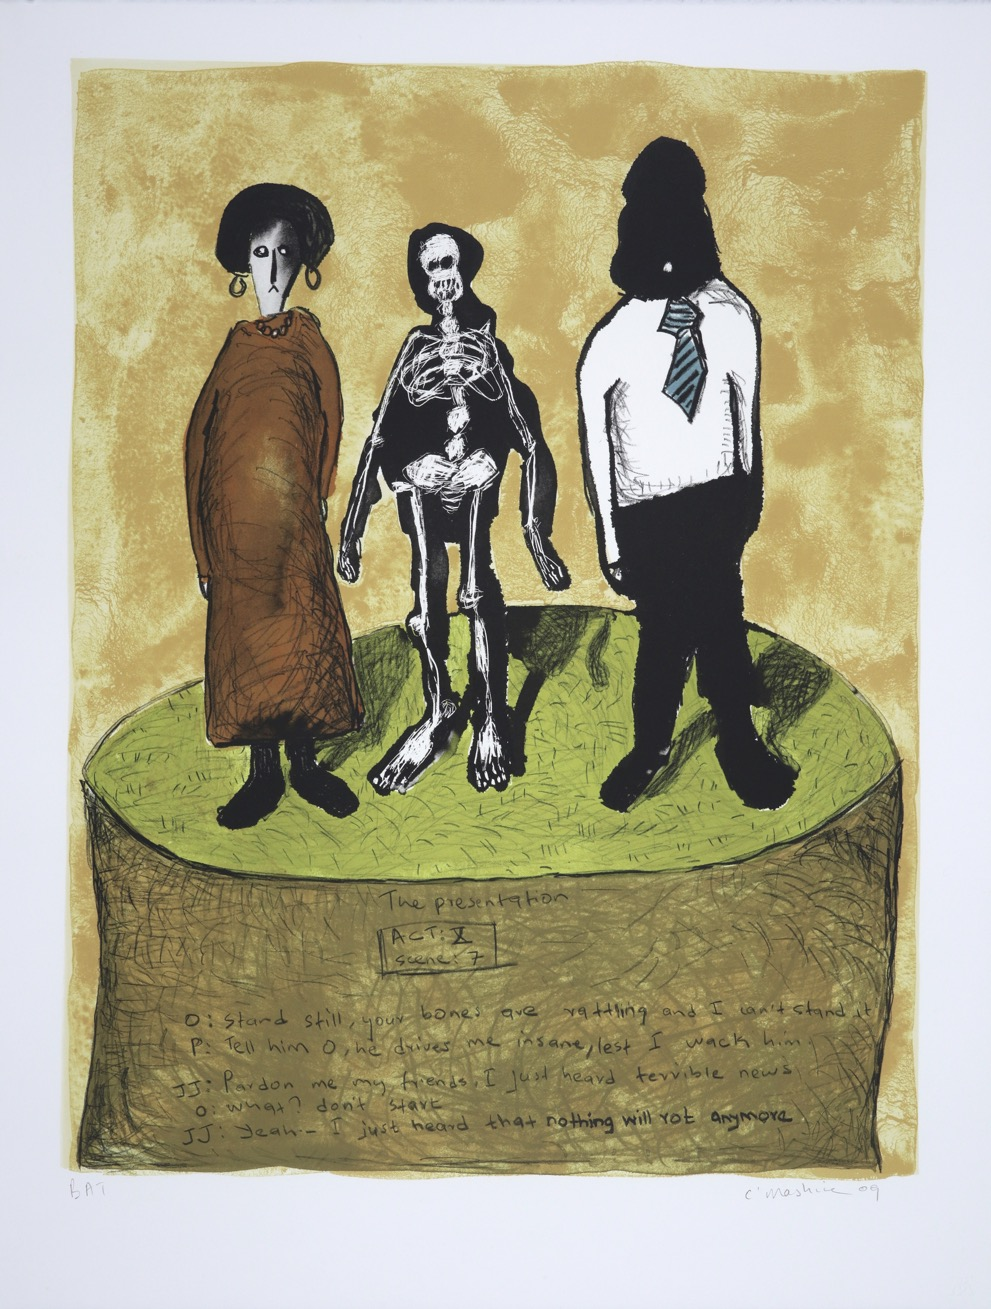 Three figures standing on a raised circular platform. The middle one is a skeleton.